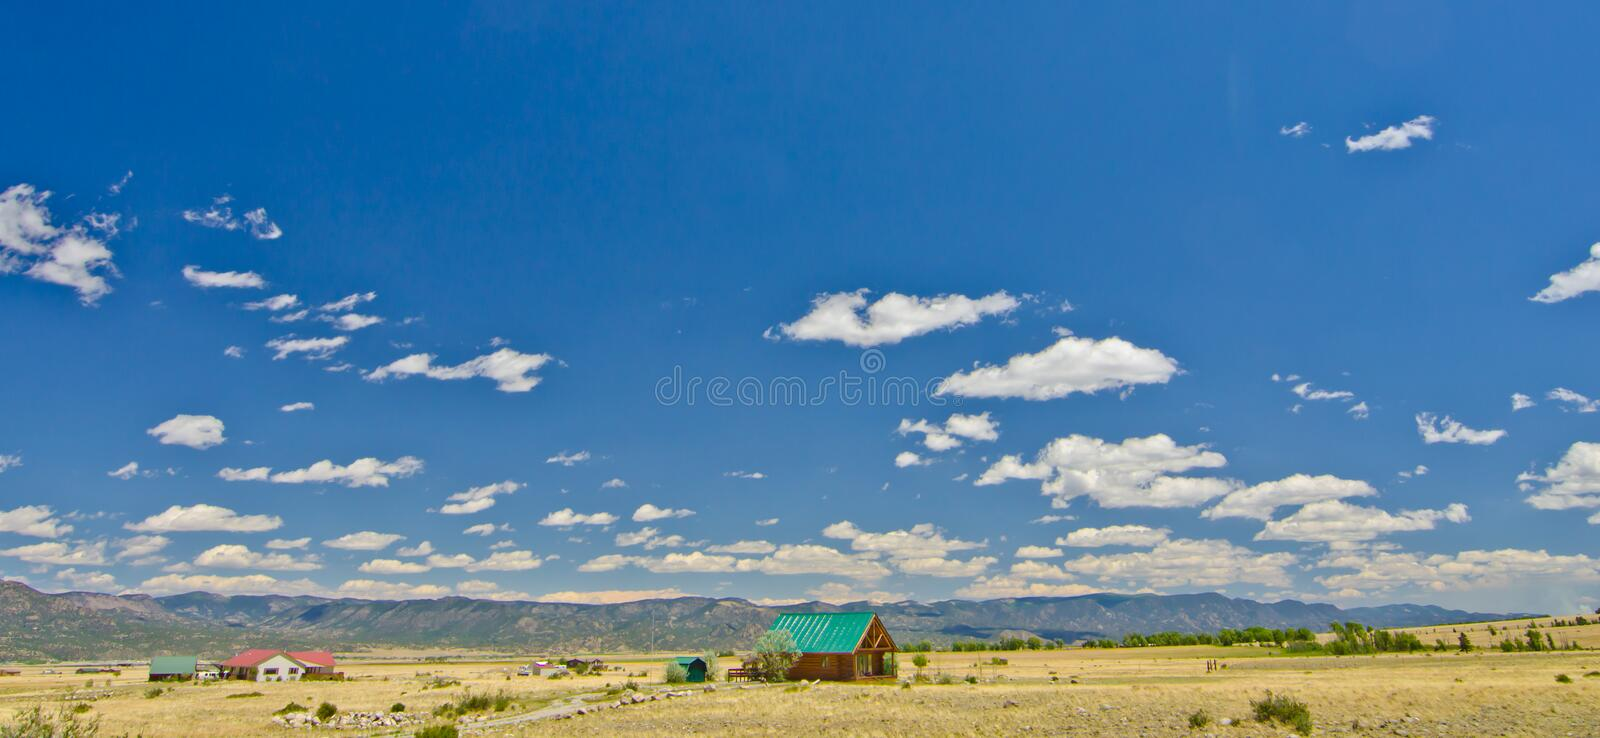 Rural Home in a Prairie on the East Side of the Rocky Mountains in Colorado.  stock image